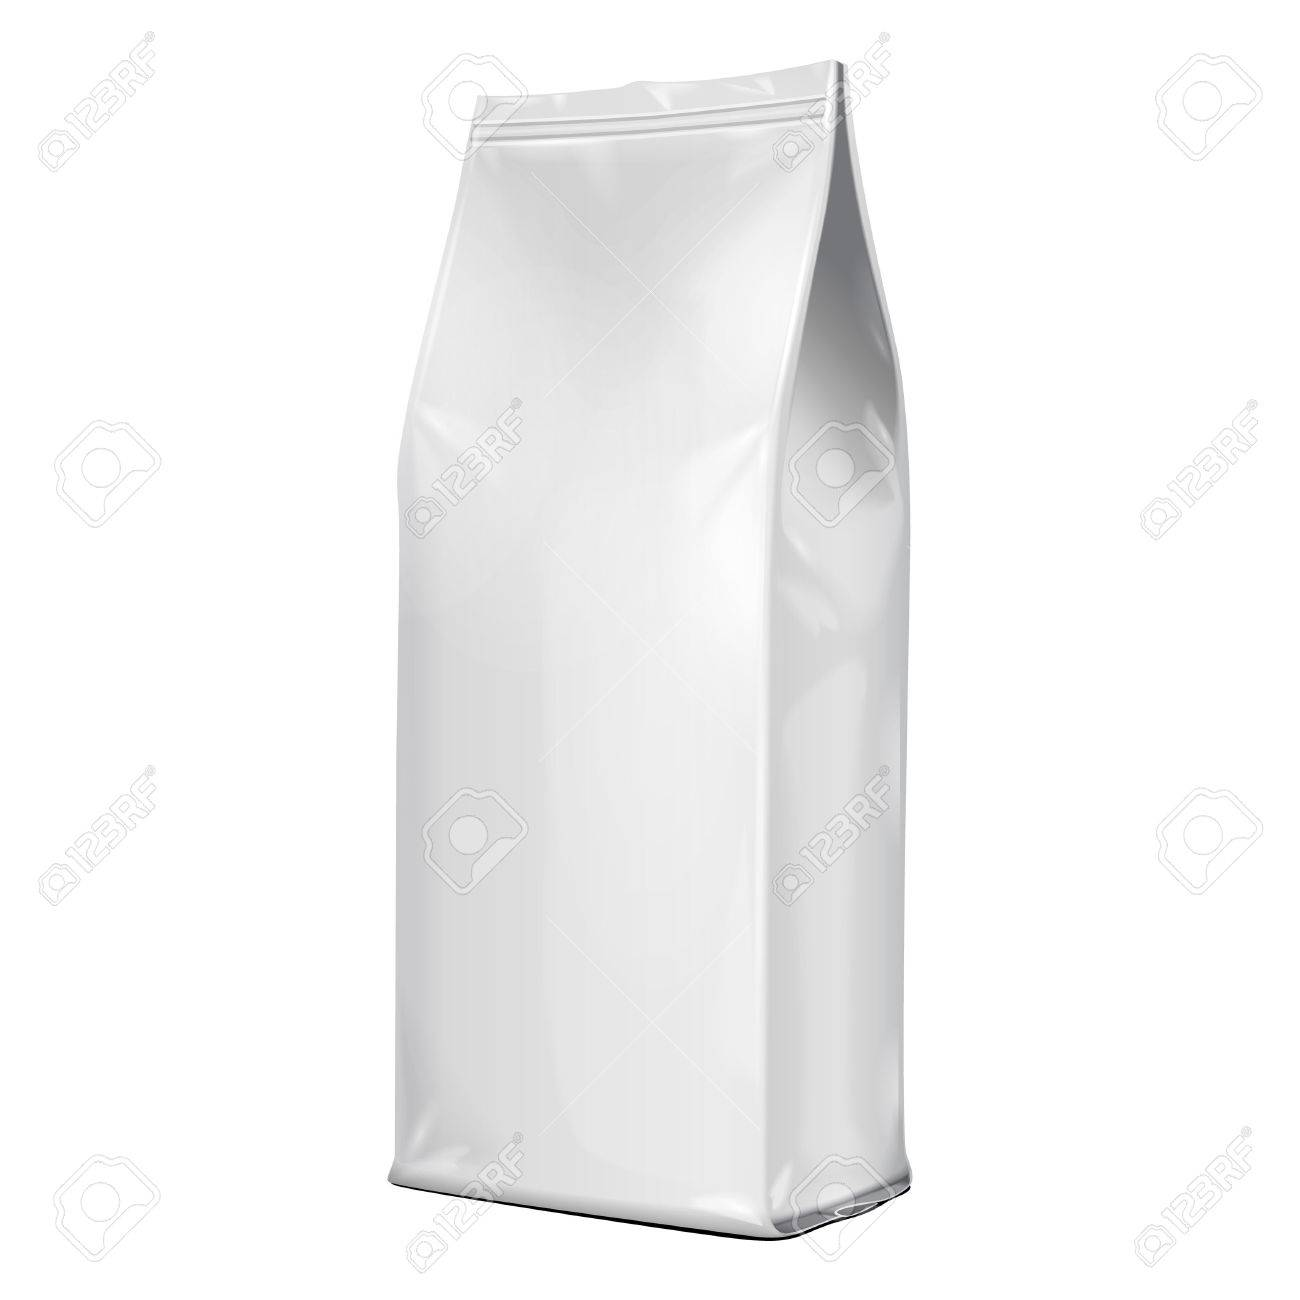 Foil Paper Food Bag Package Of Coffee, Salt, Sugar, Pepper, Spices Or Flour, Folded, Grayscale. On White Background Isolated. Mock Up Template Ready For Your Design. Product Packing Vector EPS10 - 57038086